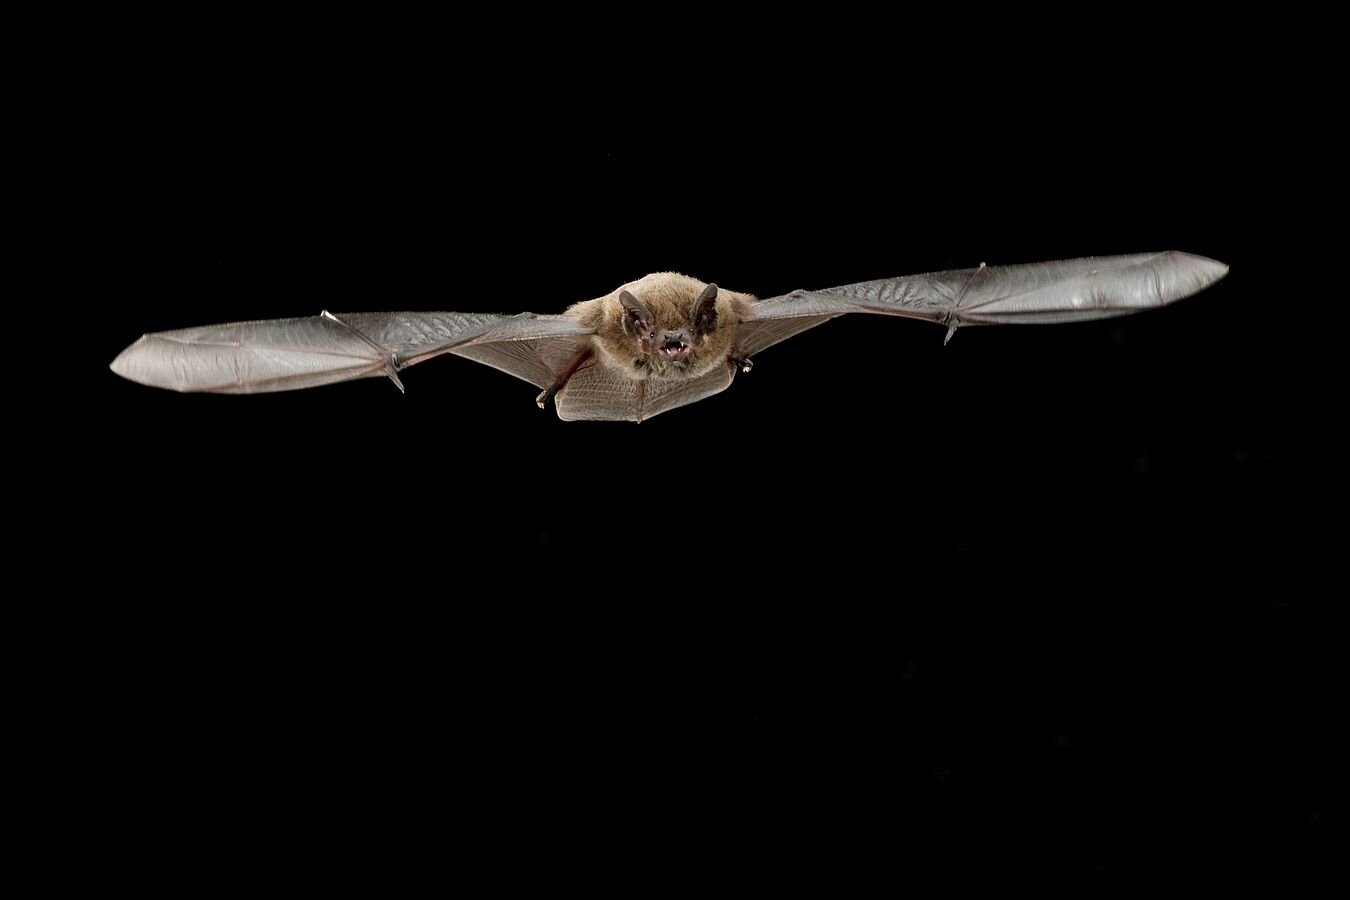 Echolocation is costly for small bats when they're calling loudly